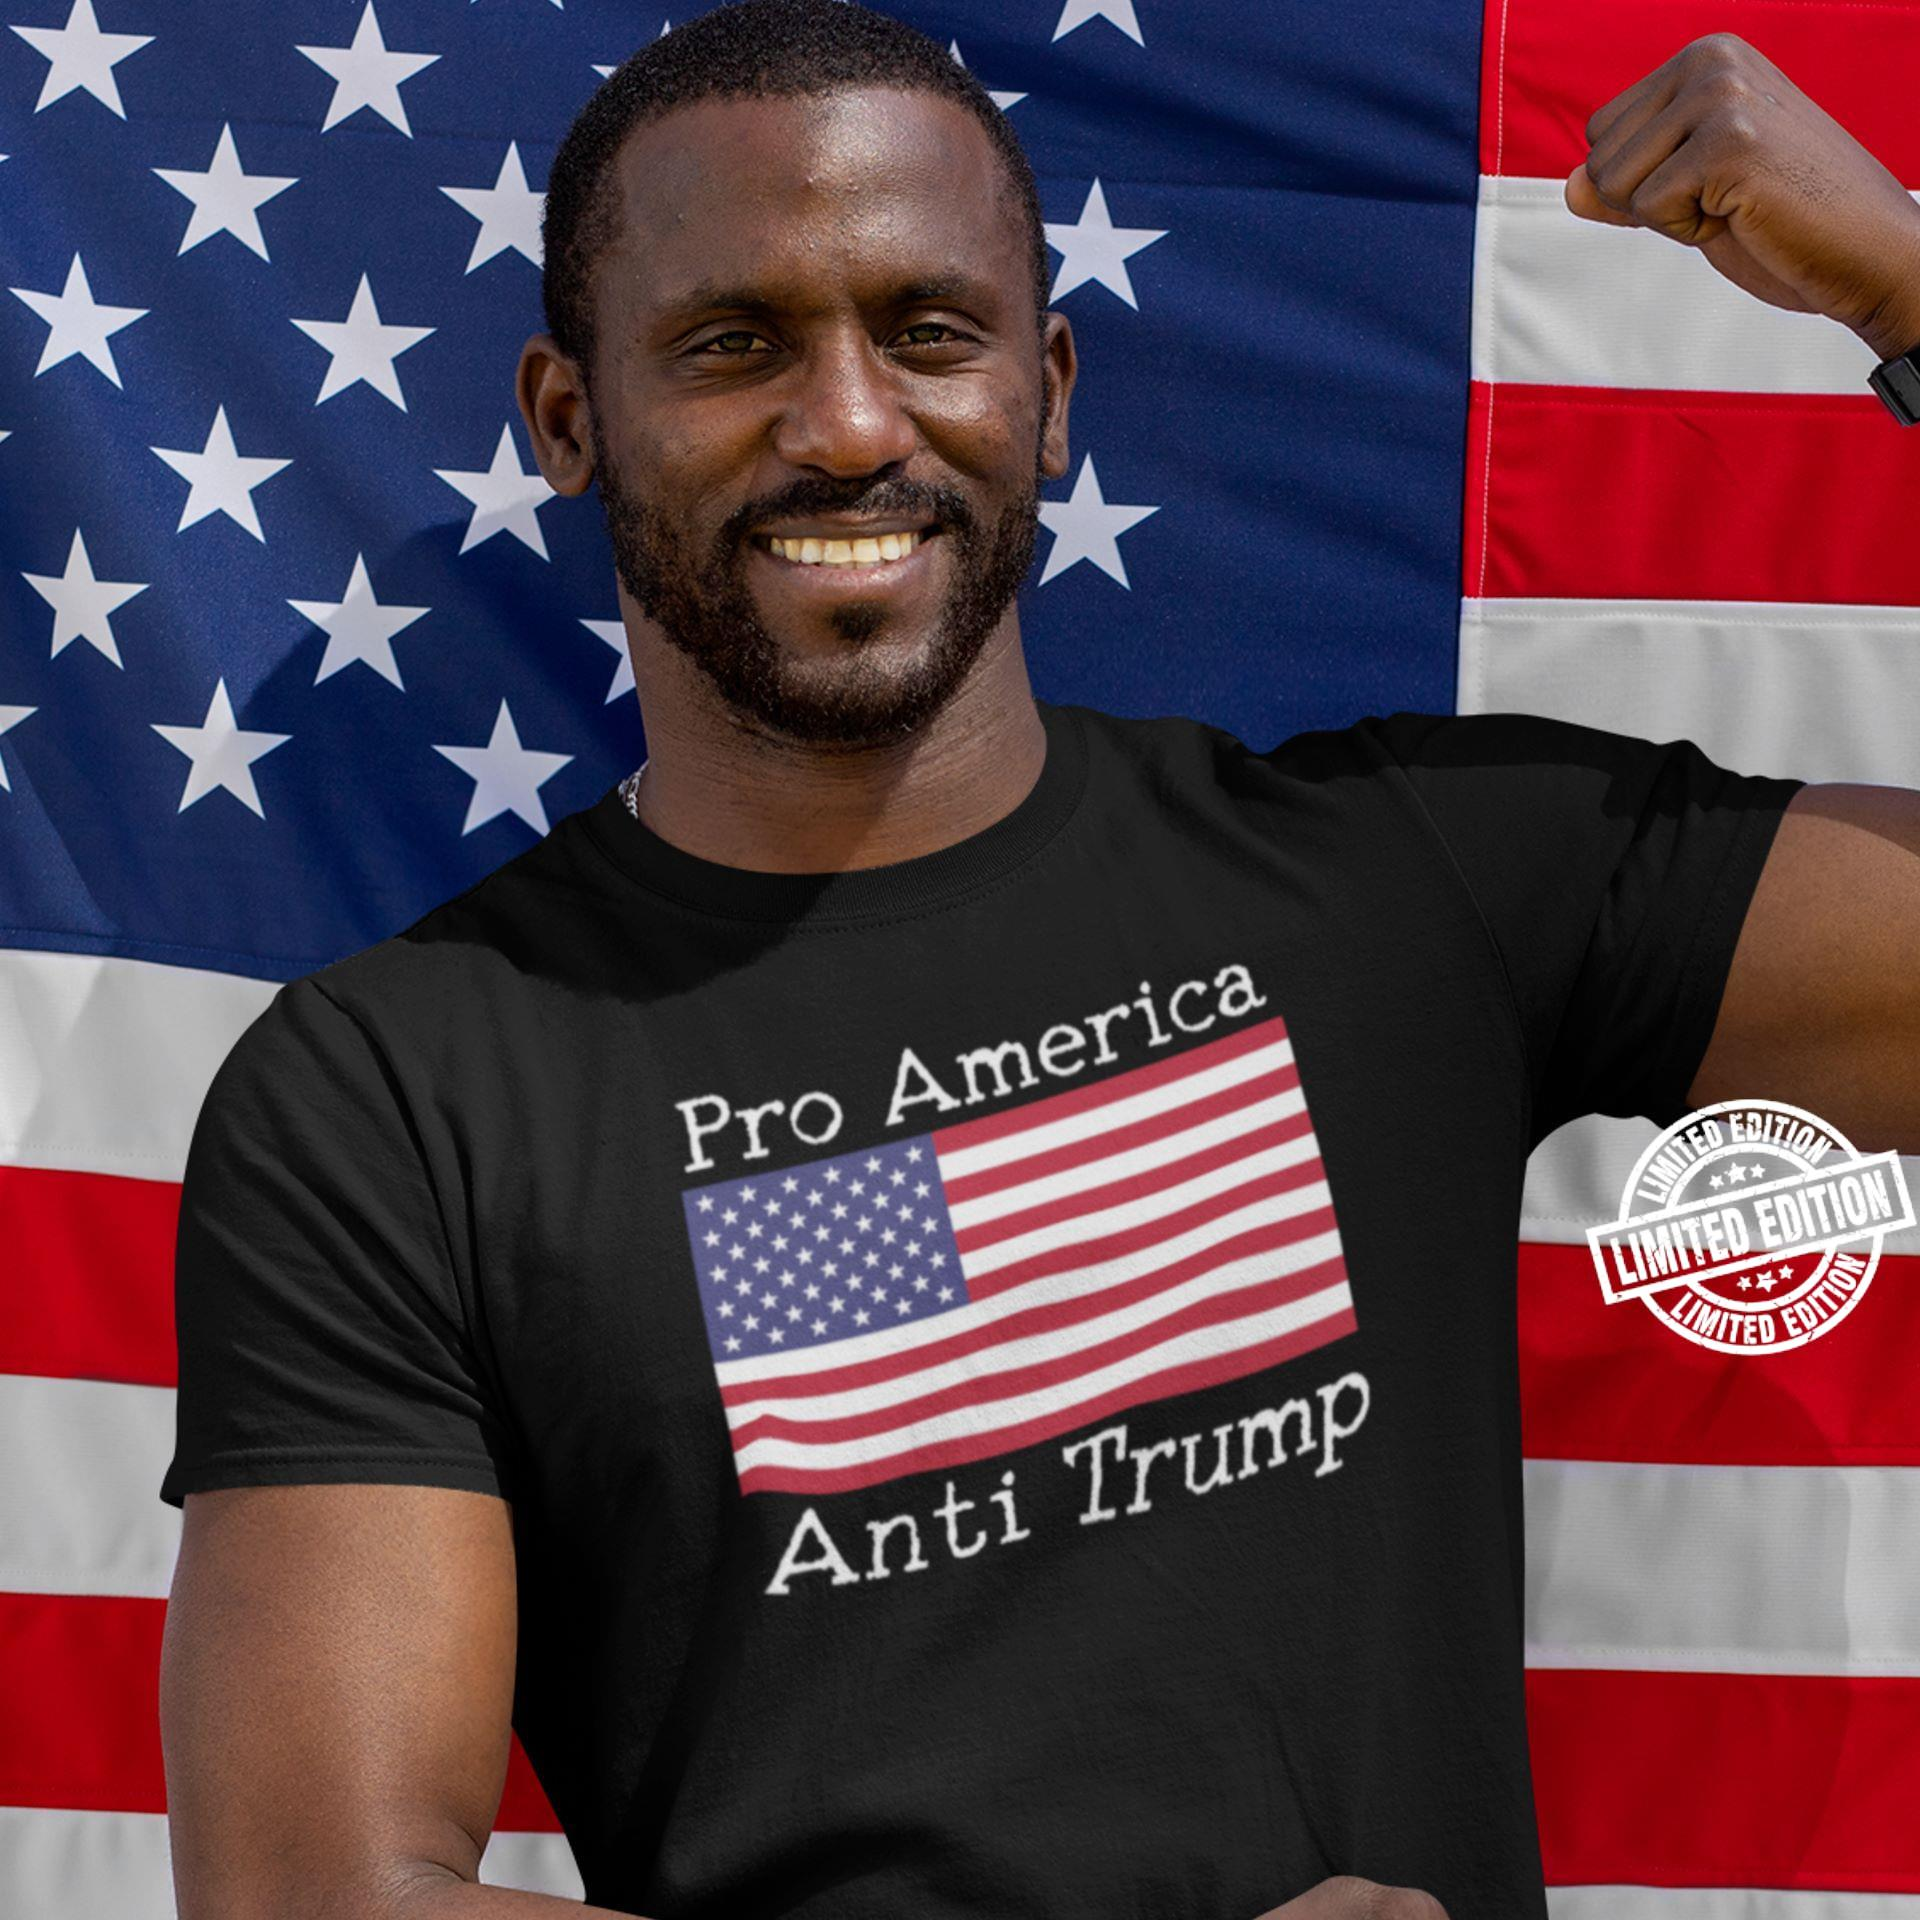 Pro America anti Trump shirt